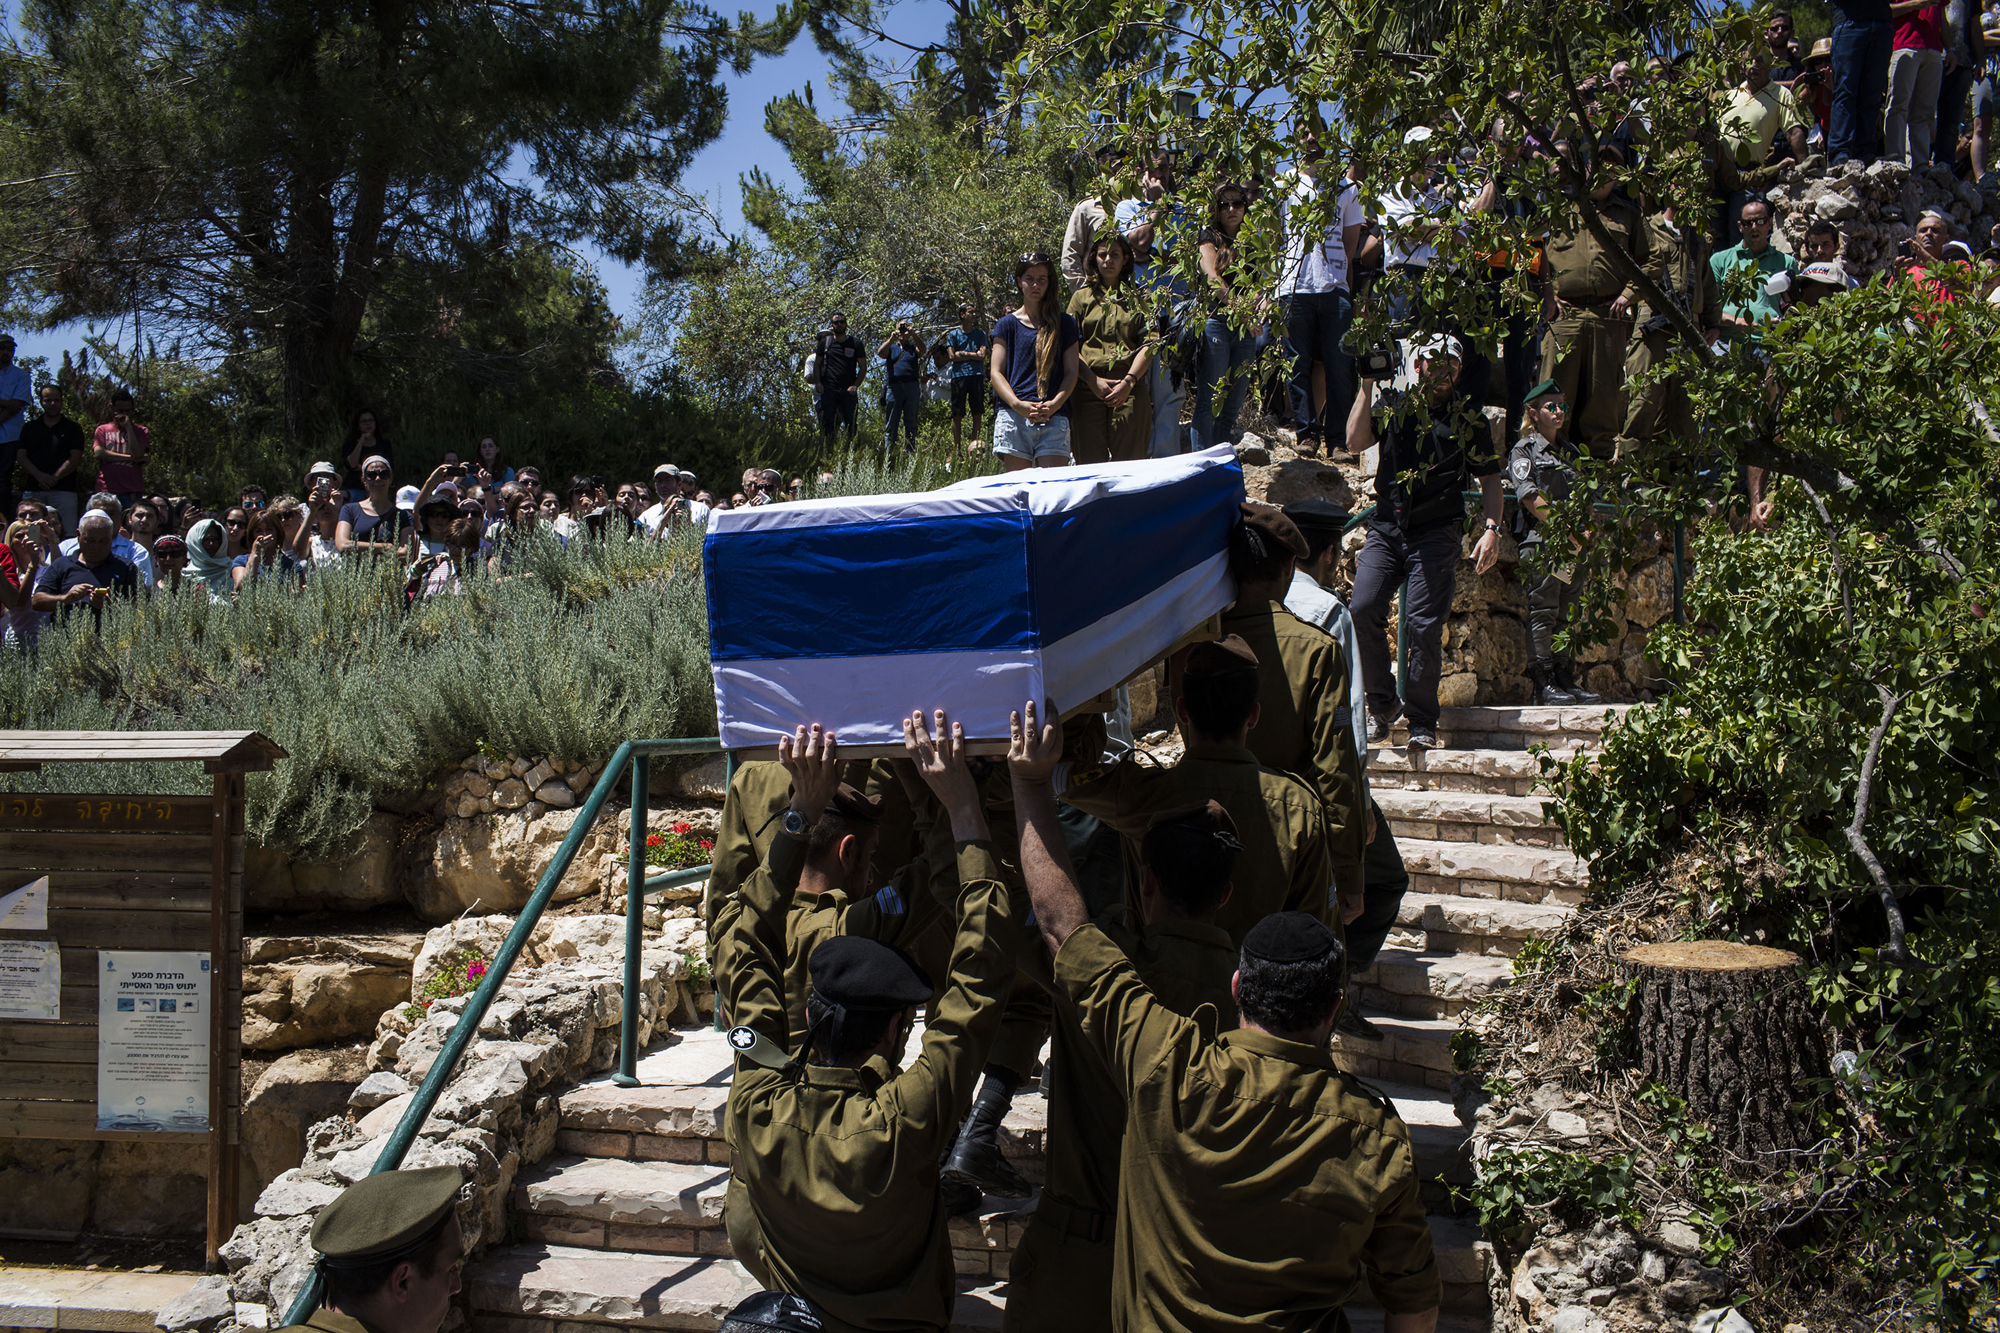 Soldiers carry the coffin of Sergeant Max Steinberg during his funeral on July 23, 2014 in Jerusalem.